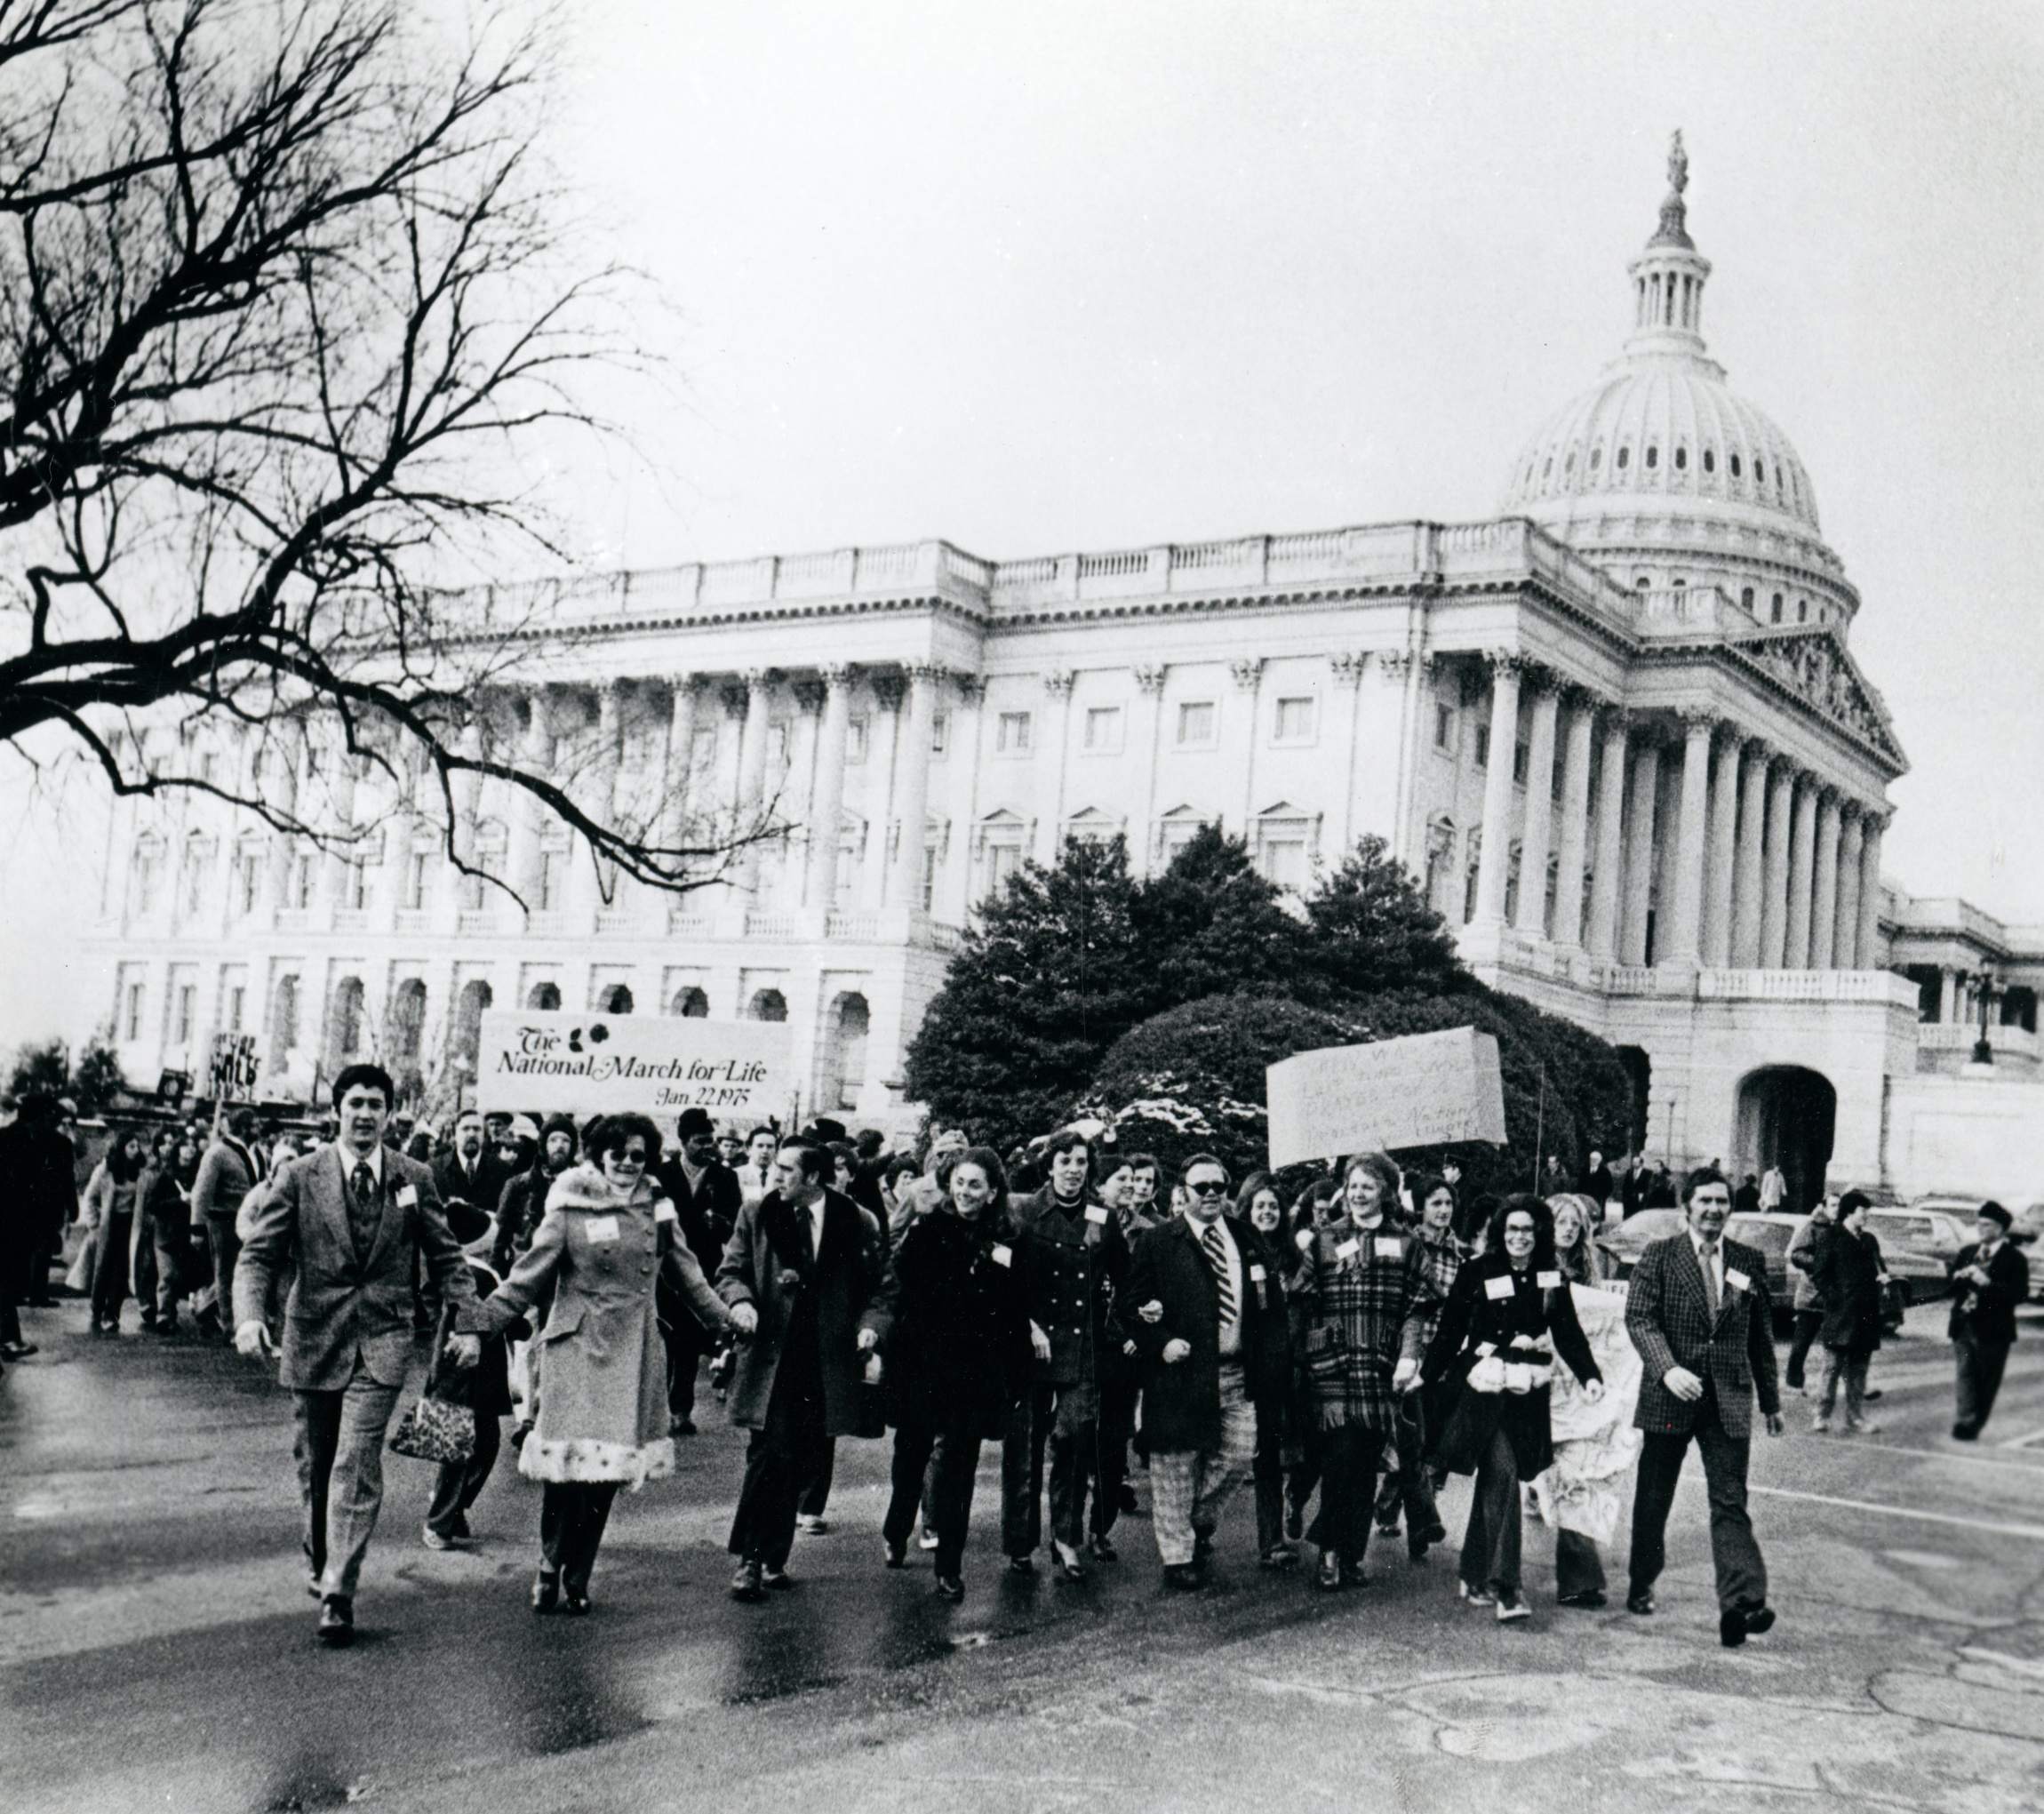 40 Years After Roe V. Wade, Pro-life Movement Strengthens